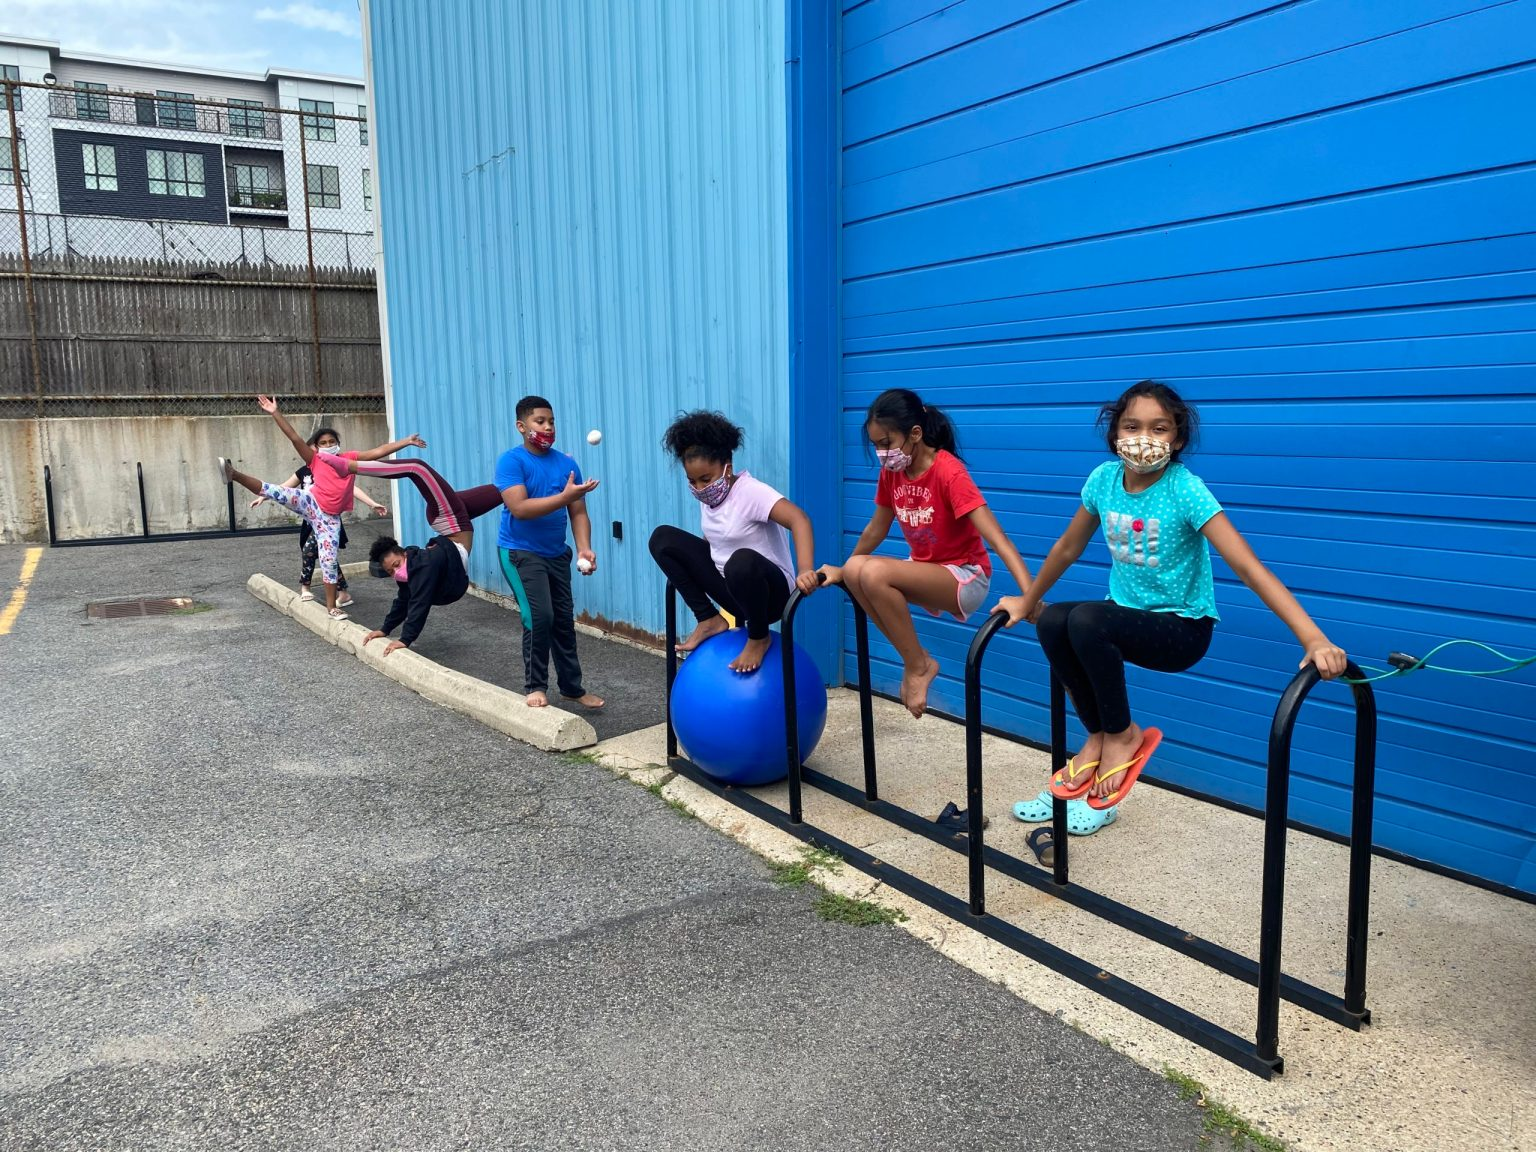 seven kids doing acrobatics and hanging on a bike rack outside of a warehouse